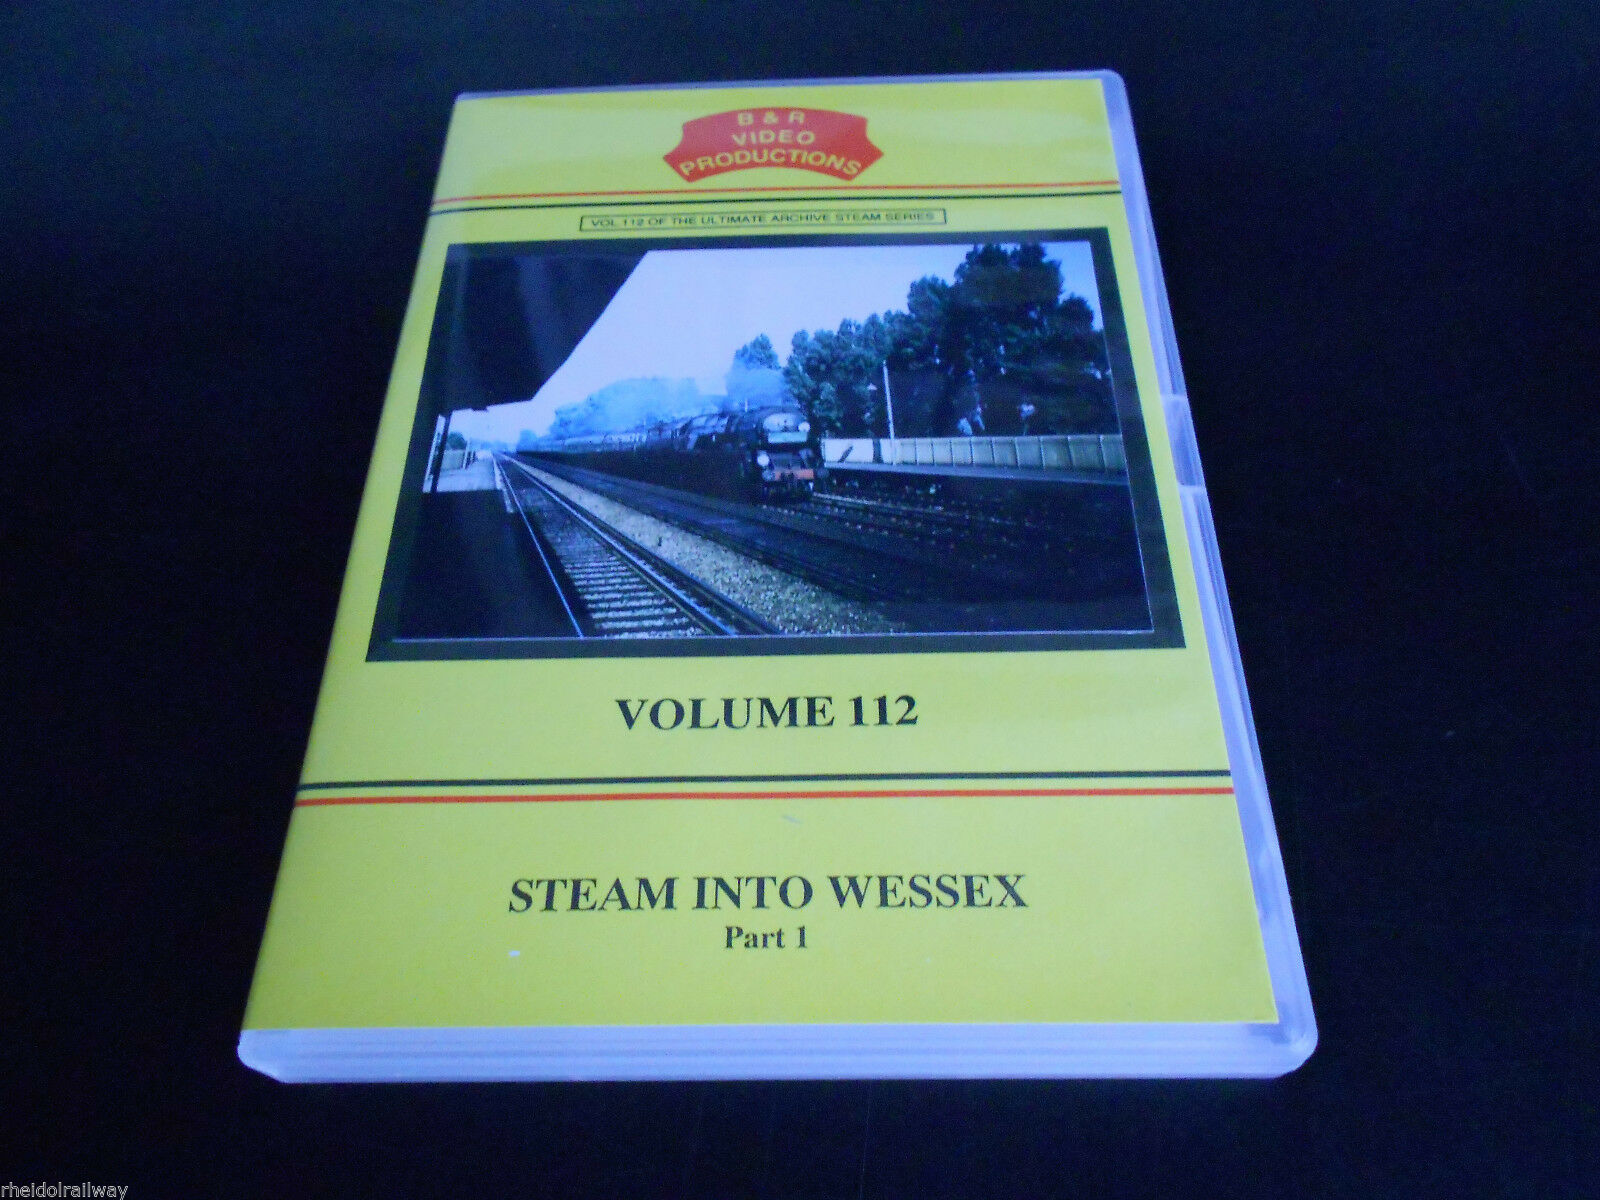 Guildford, Eastleigh, Longmoor, Steam Into Wessex Part 1 B&R Vol 112 DVD